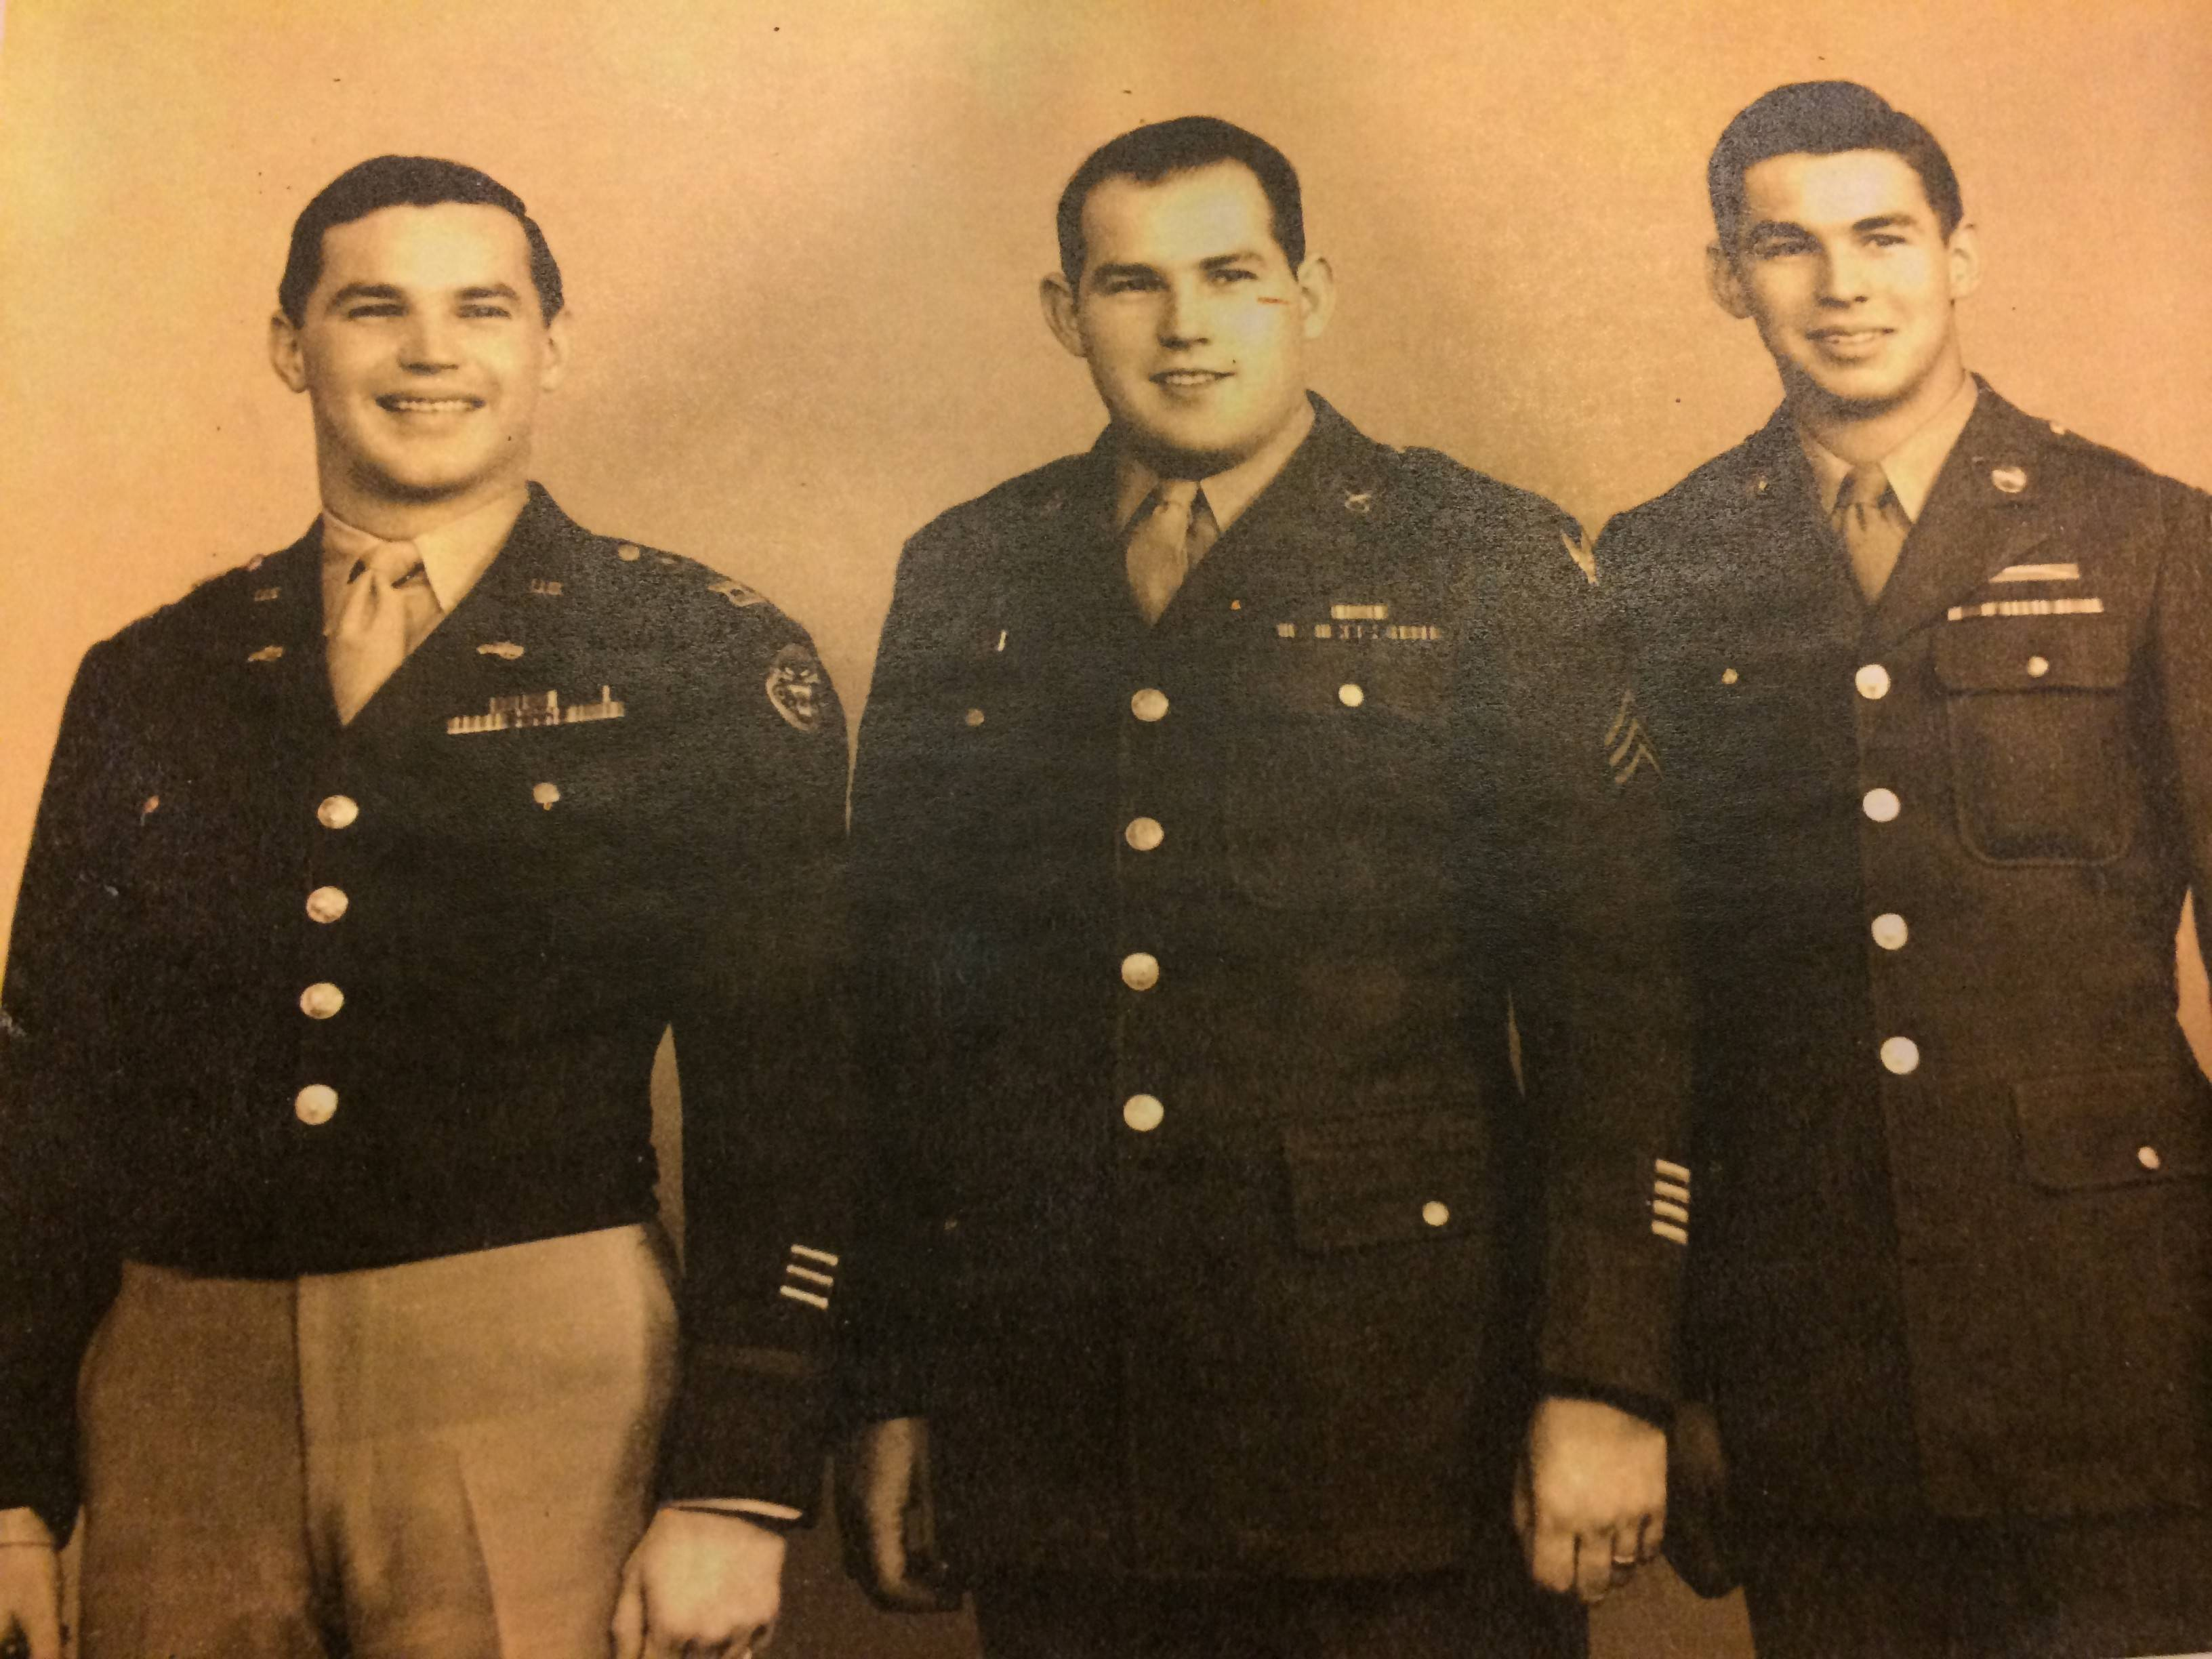 From left, Richard Duchossois with his brothers George and Albert during World War II.